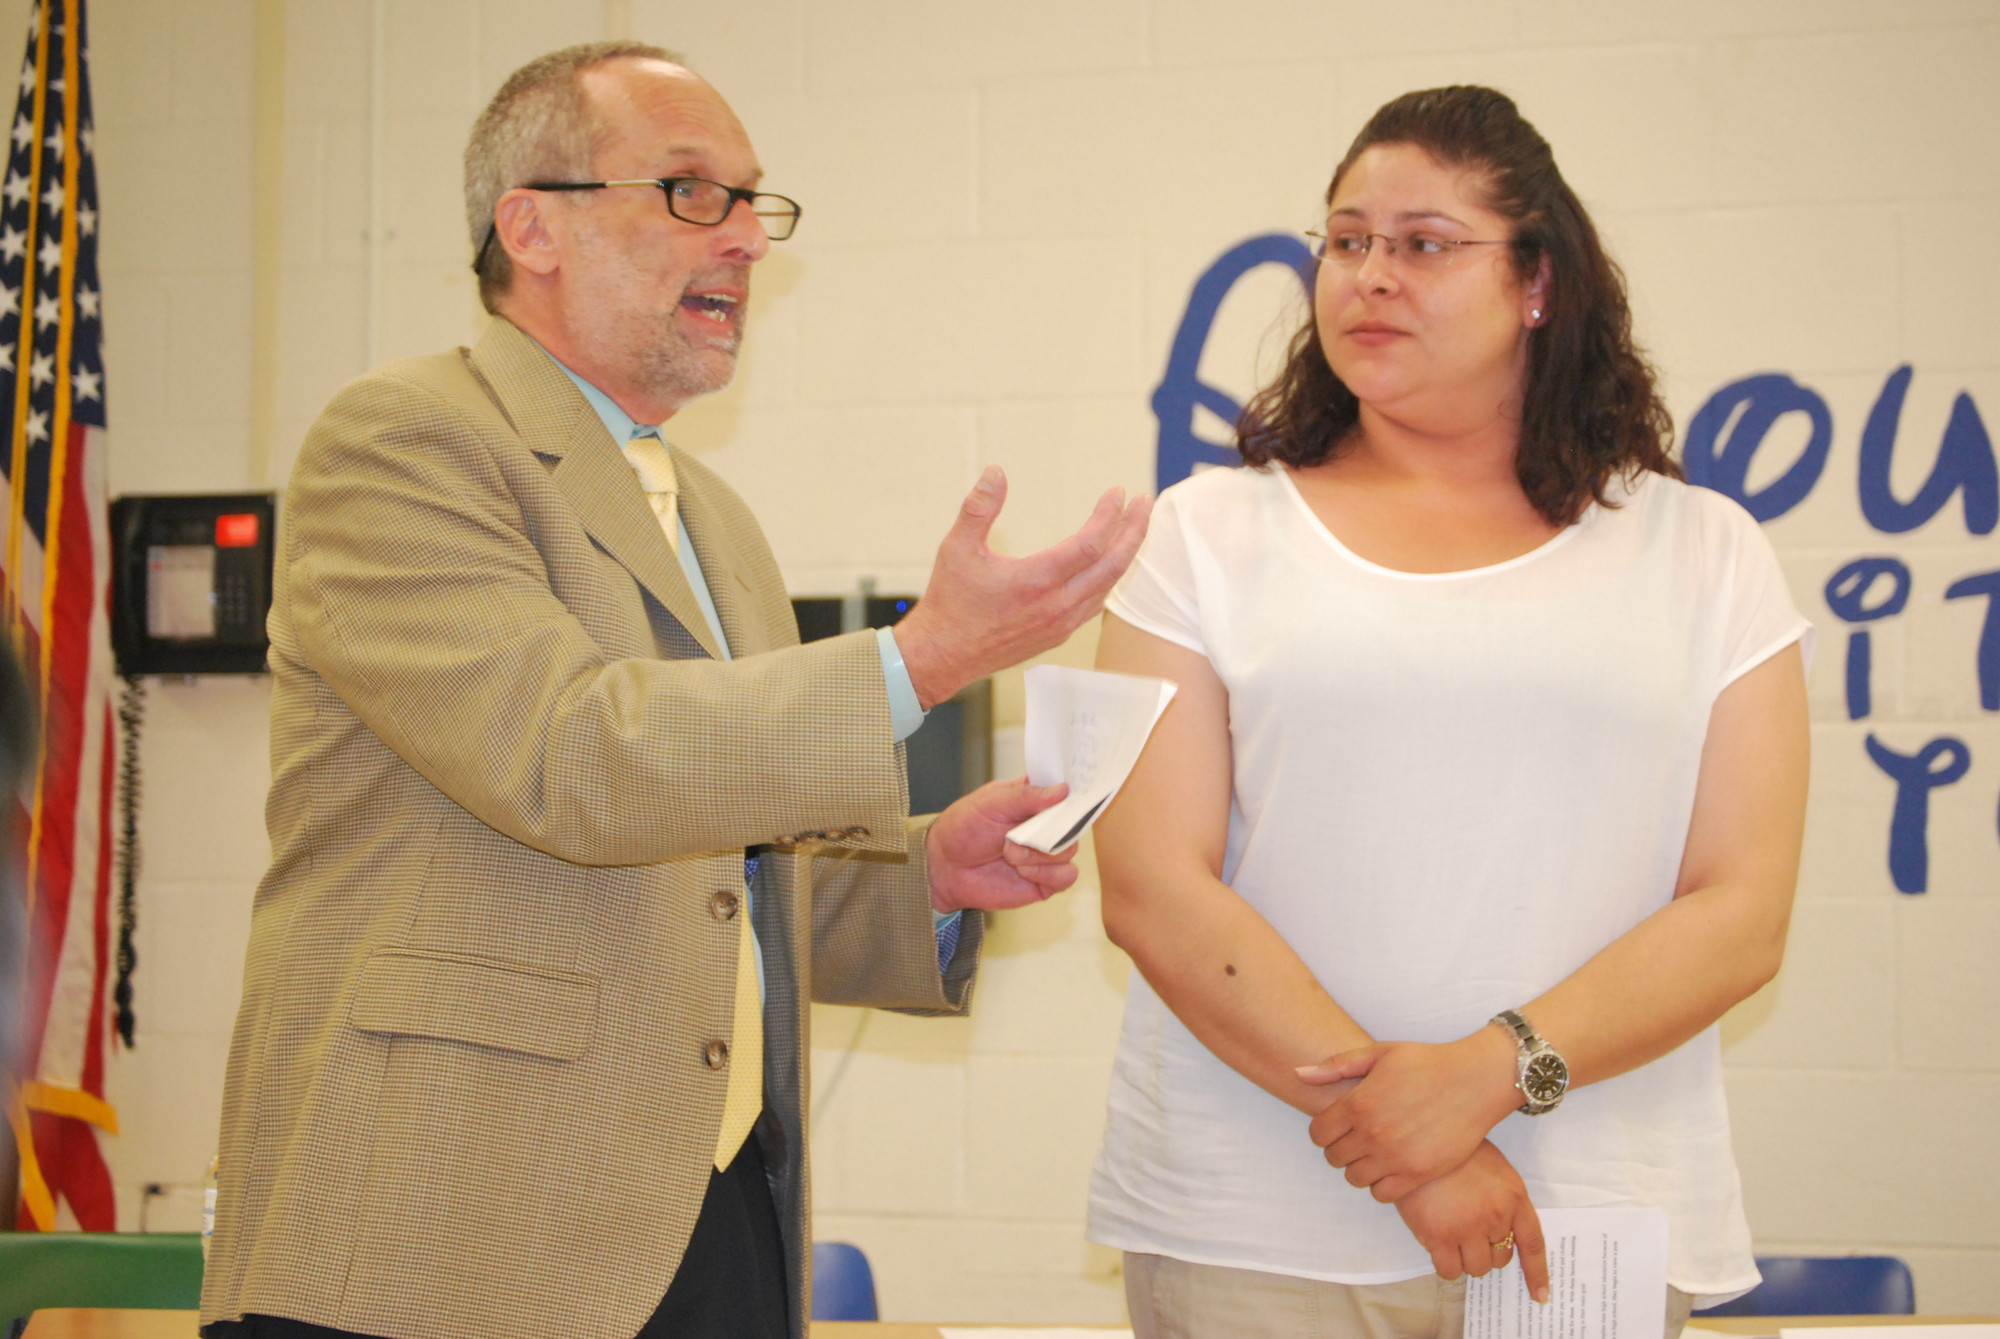 The Lawrence School District unveiled plans to improve student academic achievement. Above, Superintendent Gary Schall and guidance counselor Veronica Ortiz explained the issues involved at a 